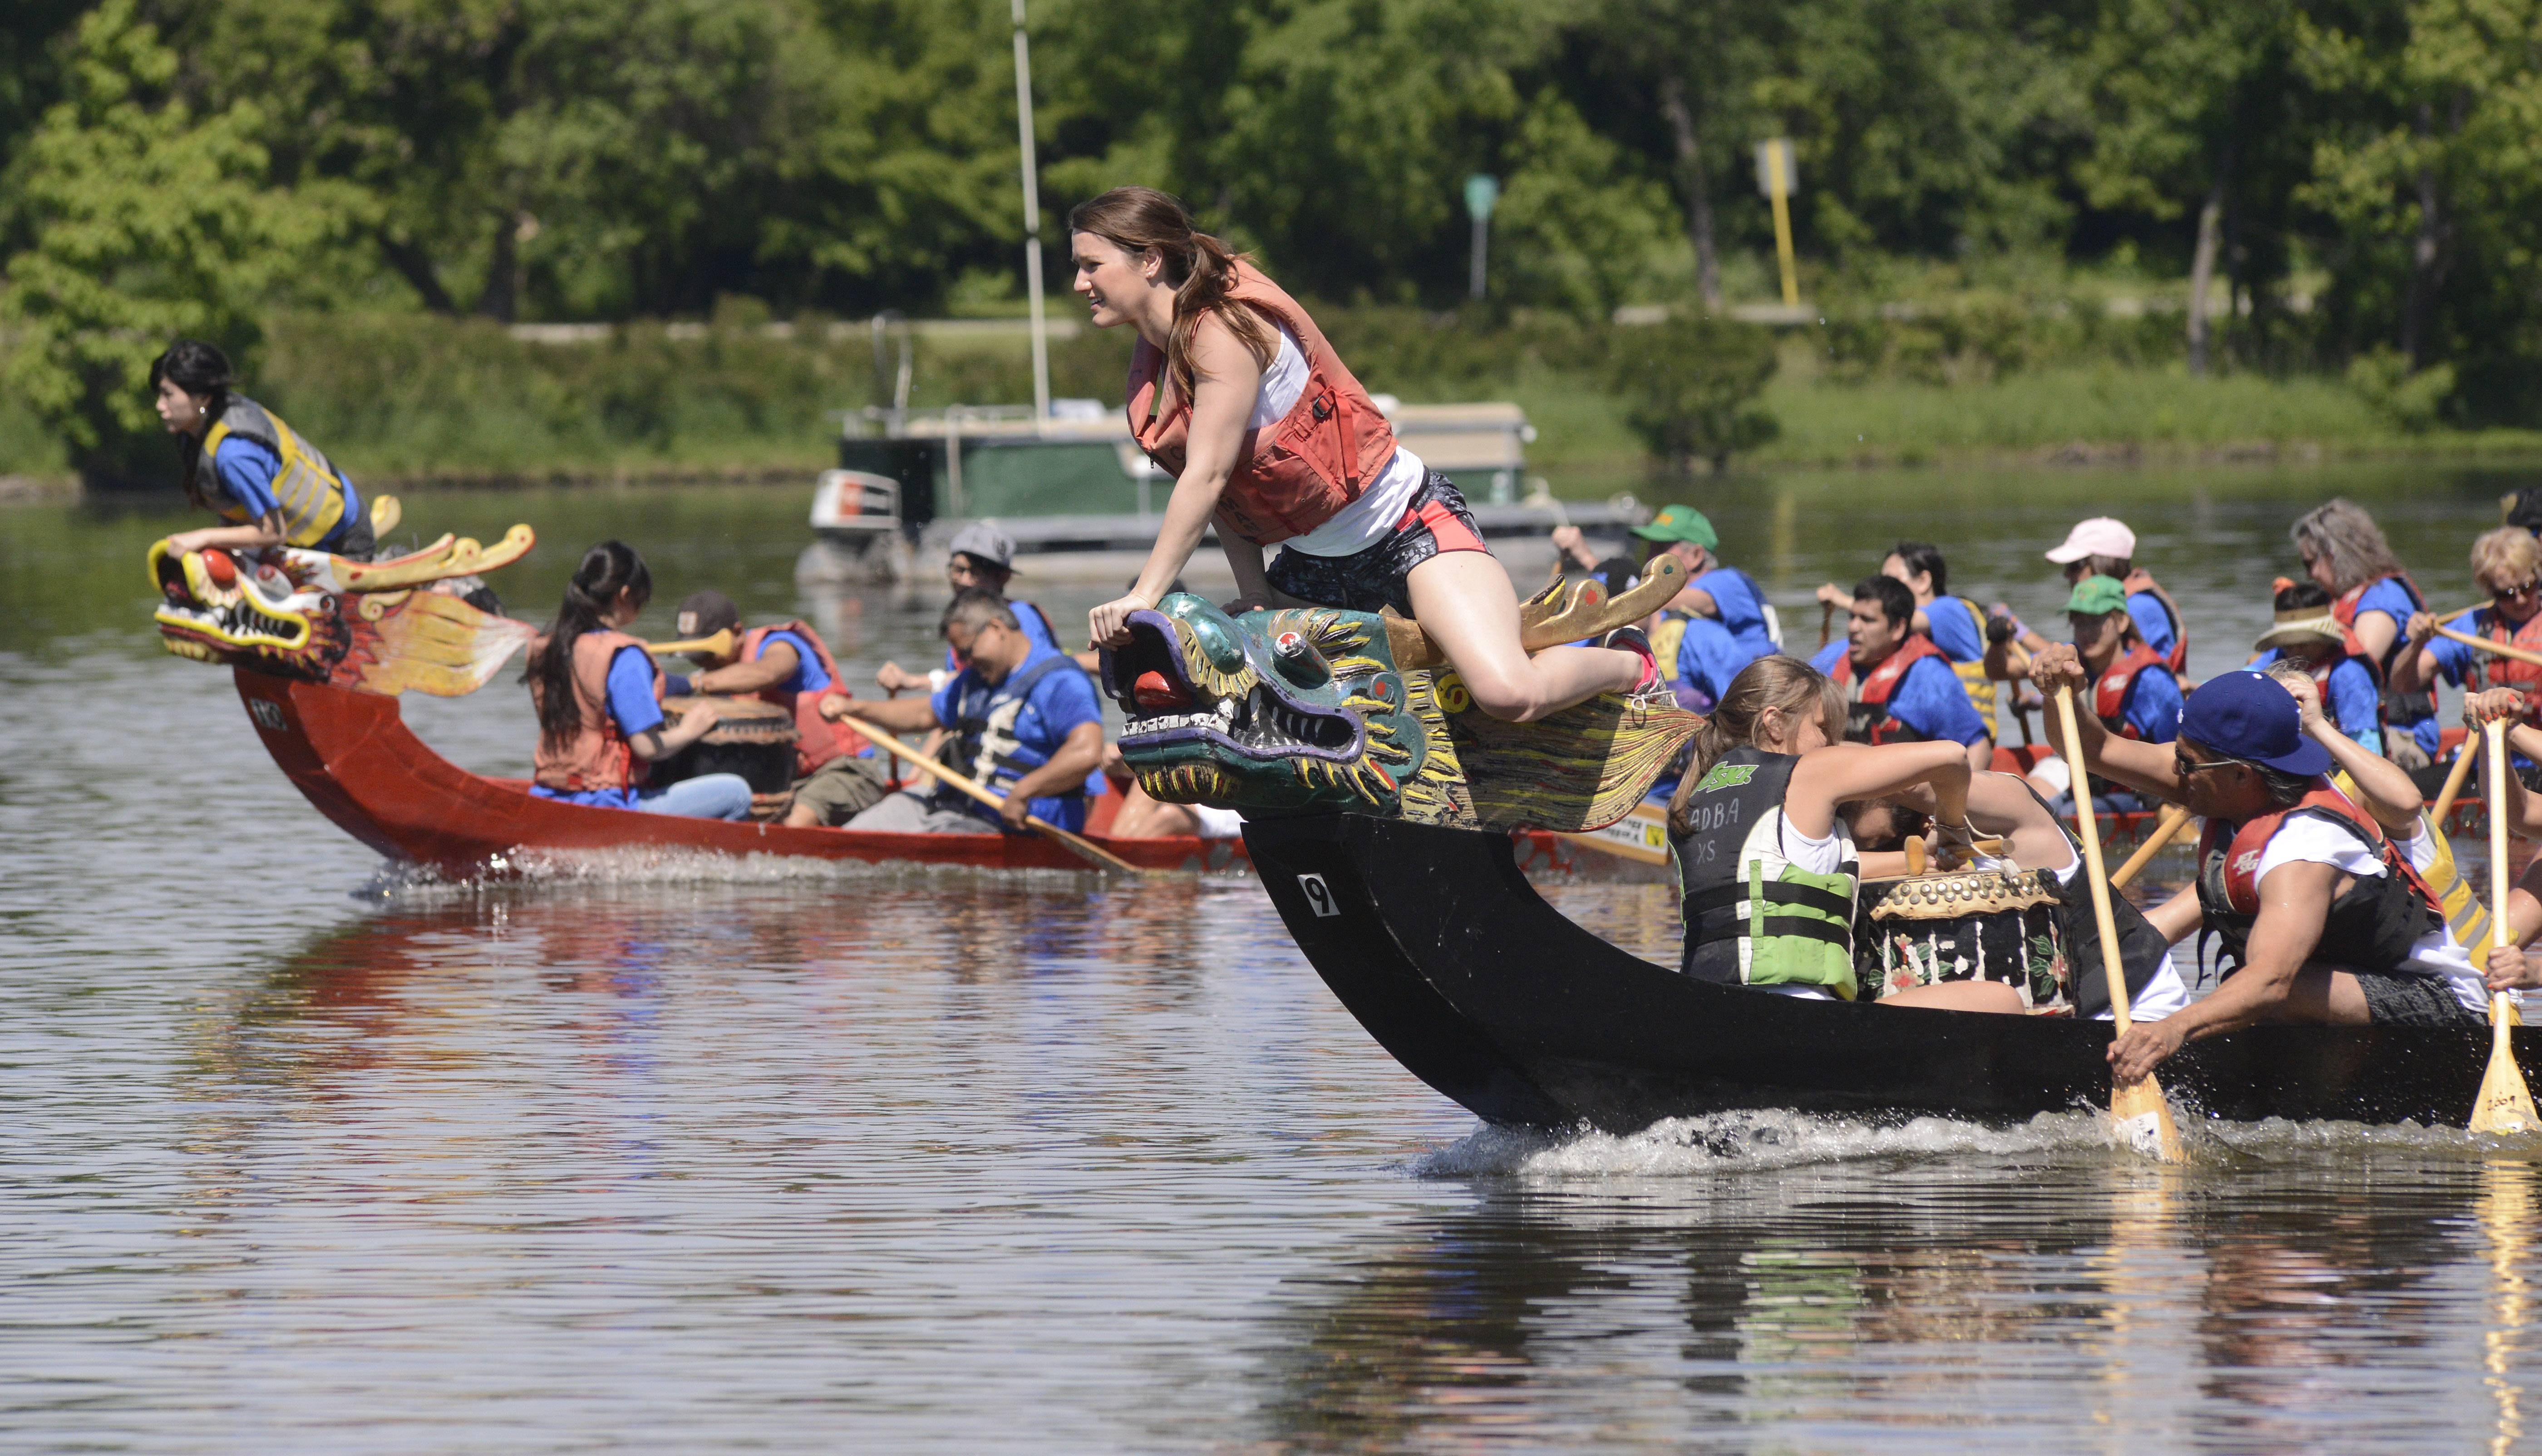 St. Charles RiverFest offers more teen activities